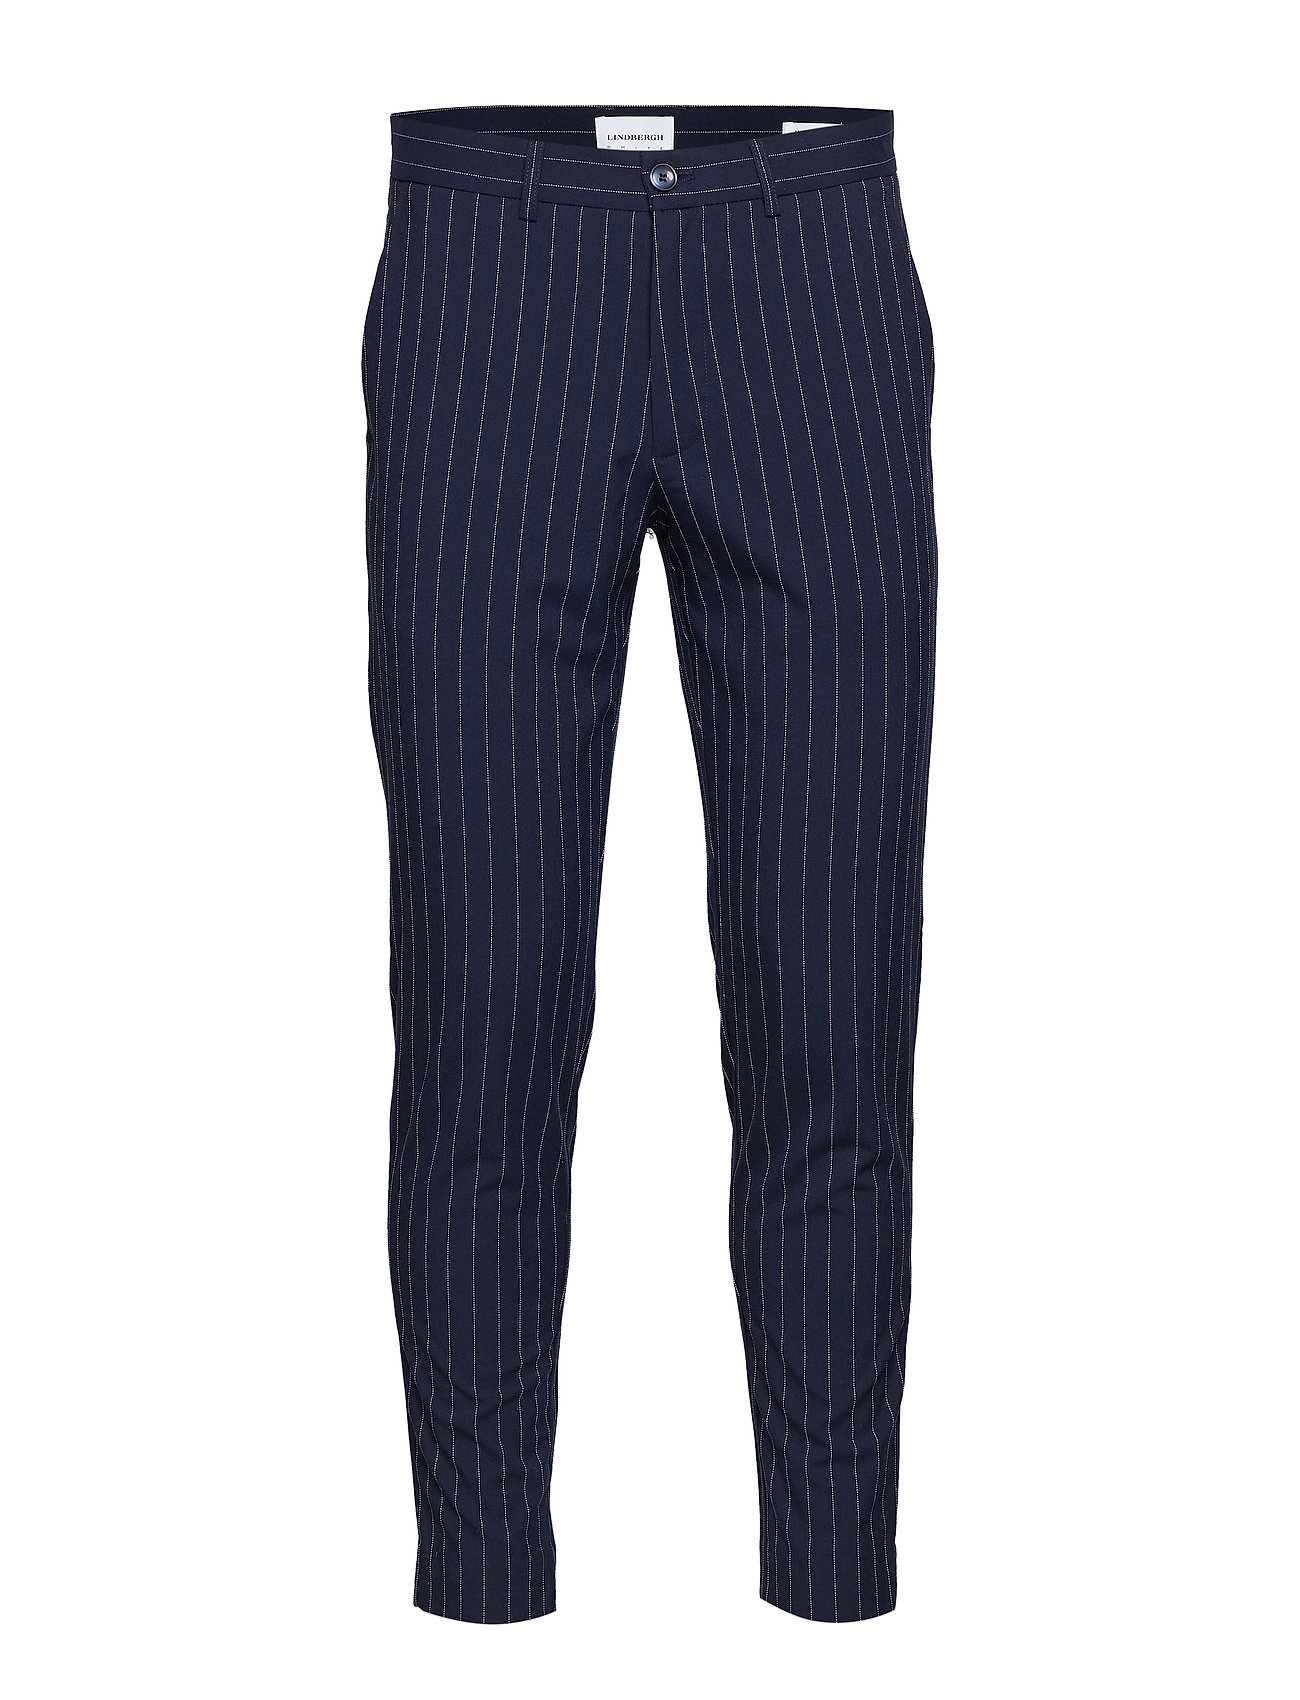 Lindbergh Club Pants Pin Striped - NAVY